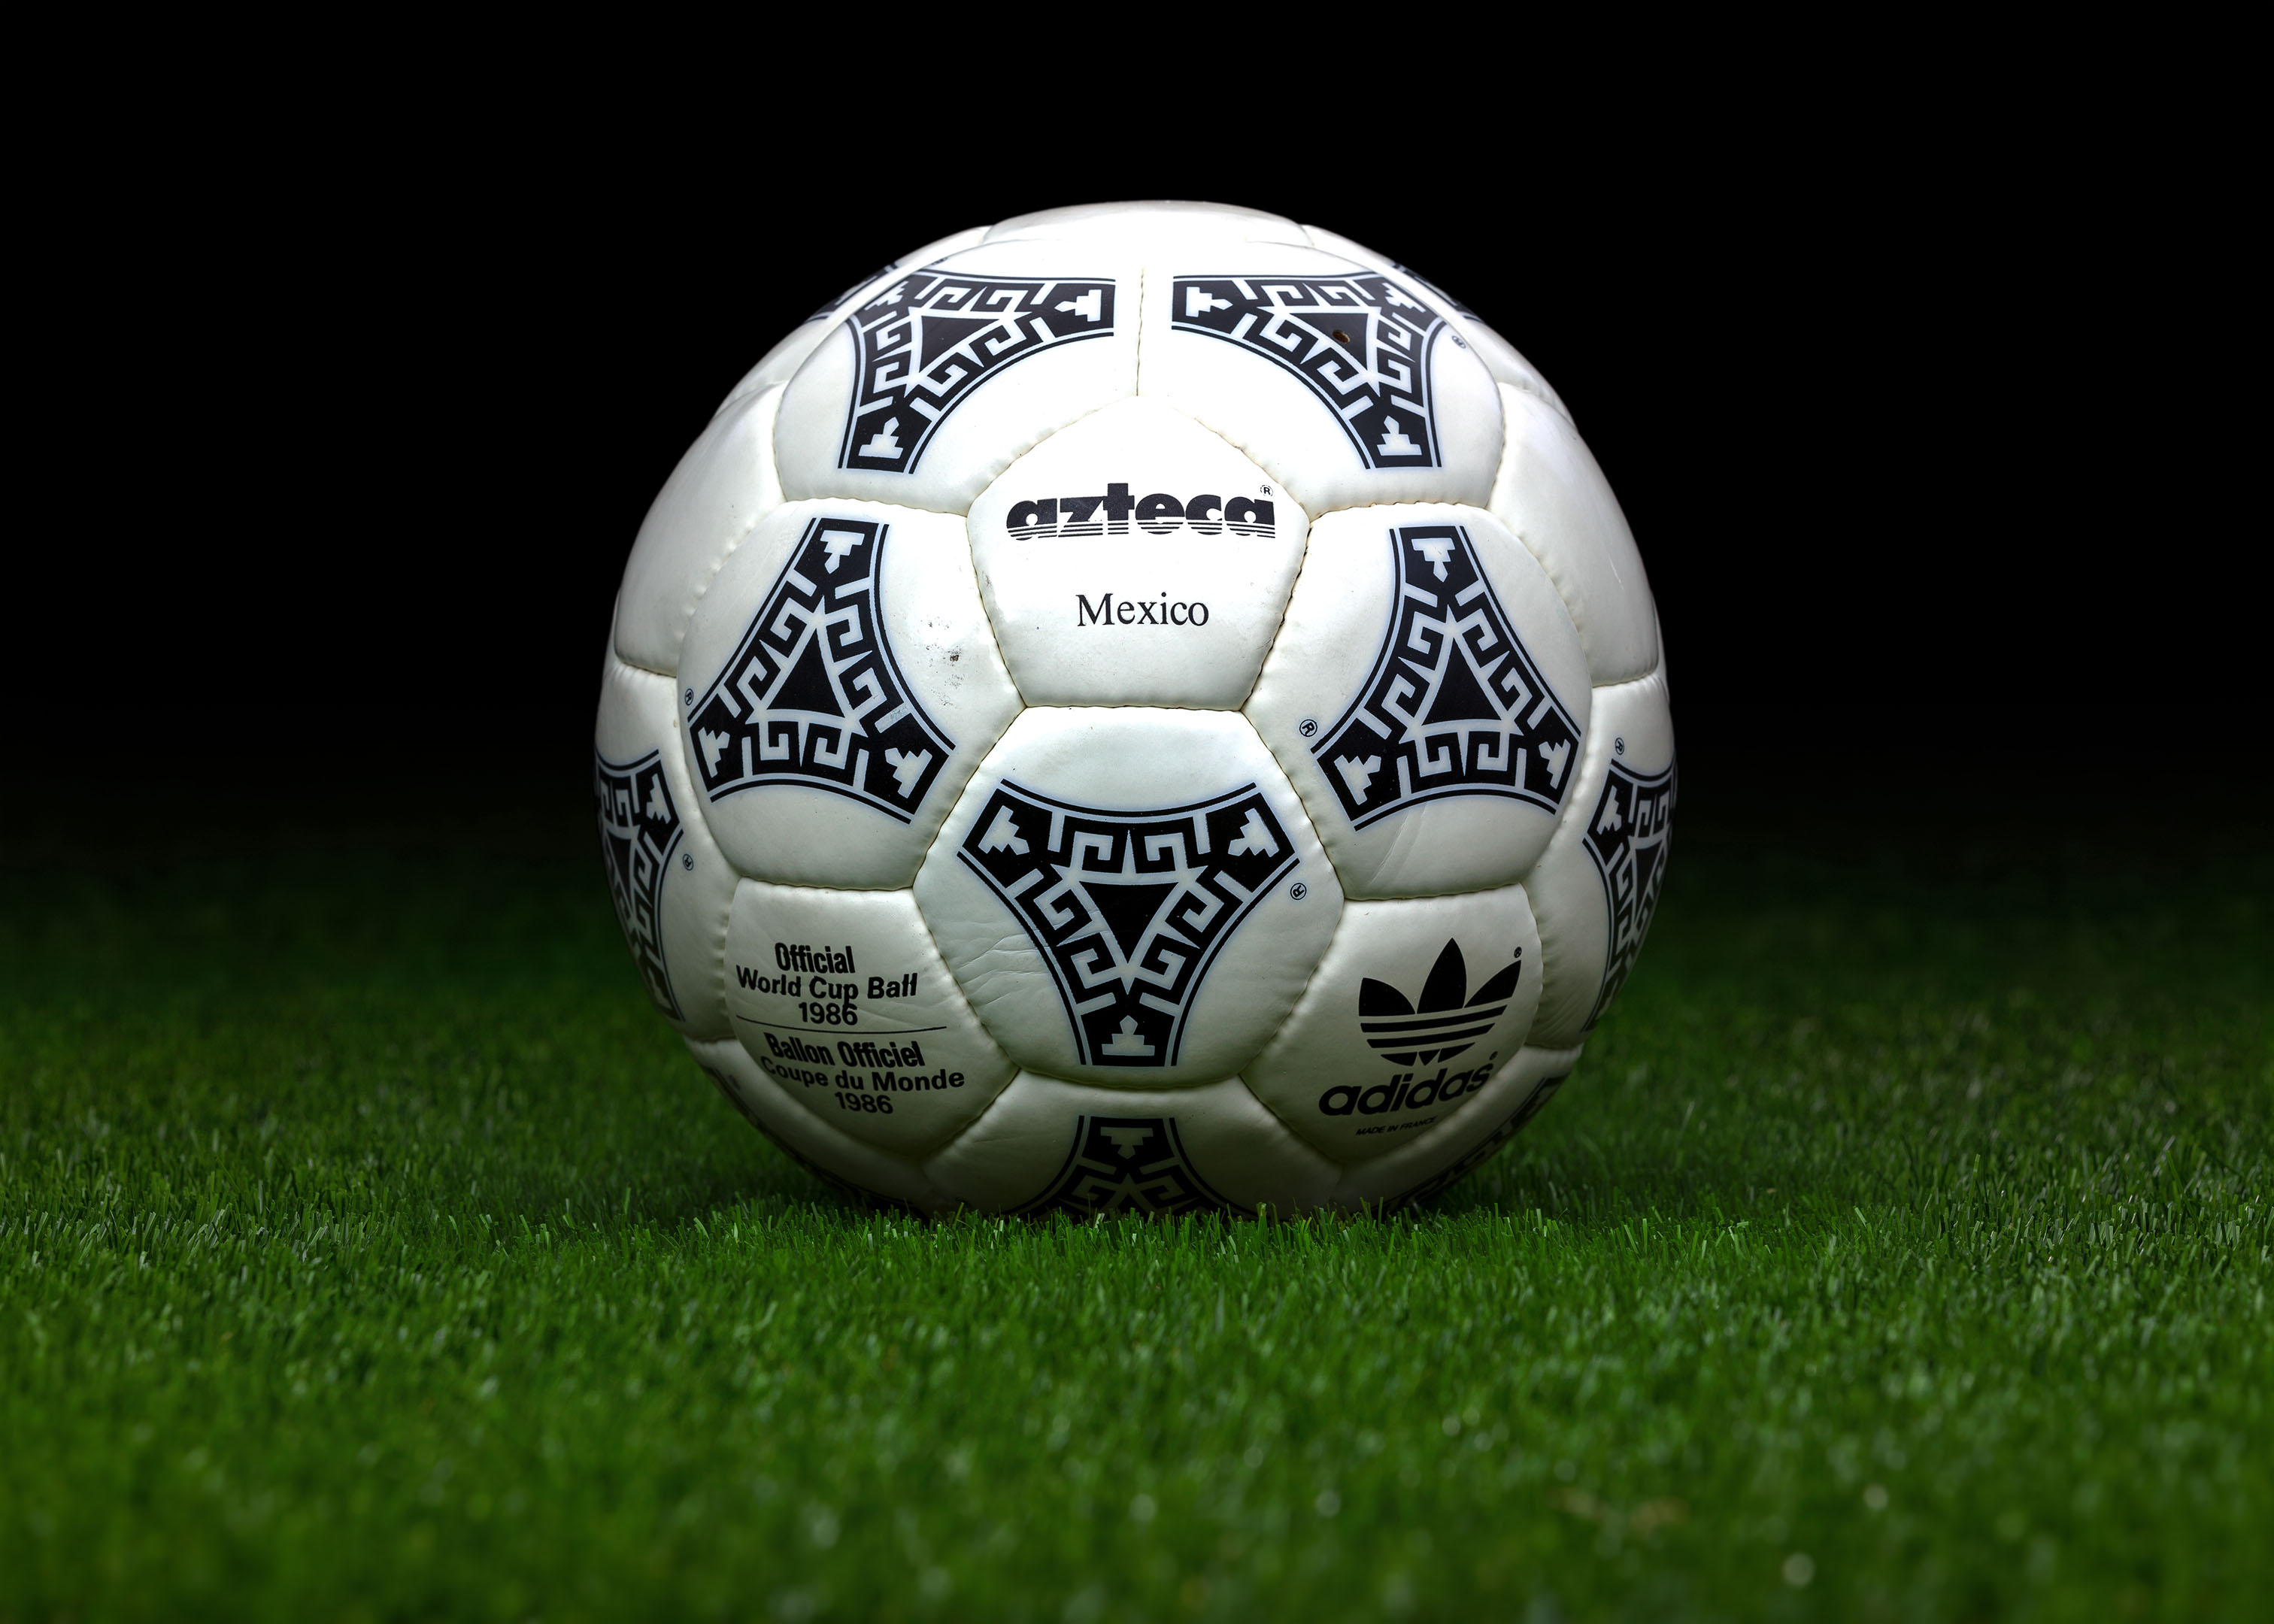 marxista malo Pronunciar  Made in France match ball FIFA World Cup 1986 Mexico Adidas Azteca 2 -  worldcupballs.info